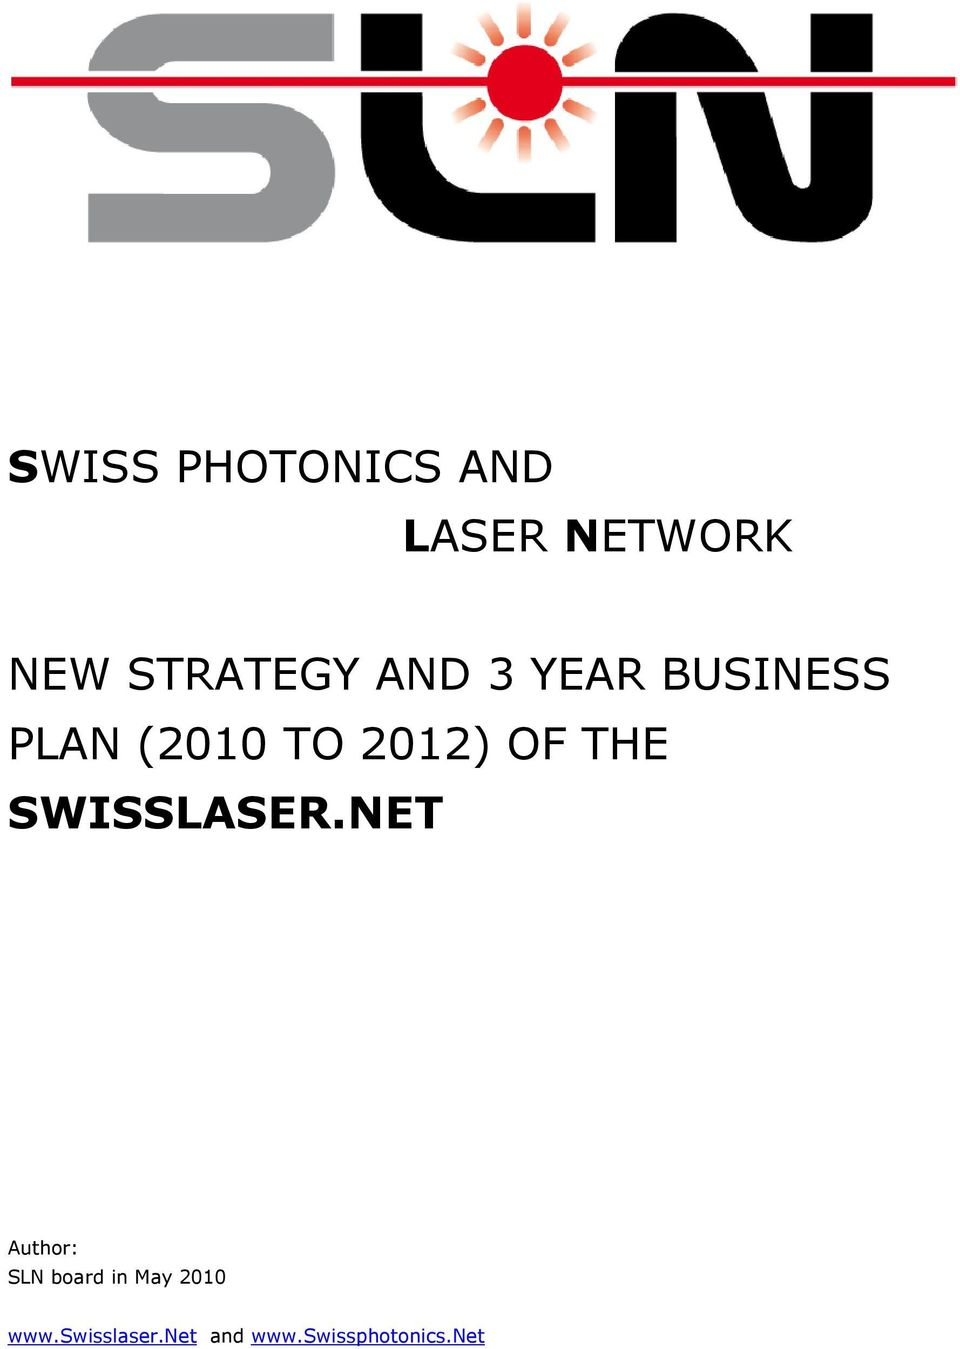 2012) OF THE SWISSLASER.